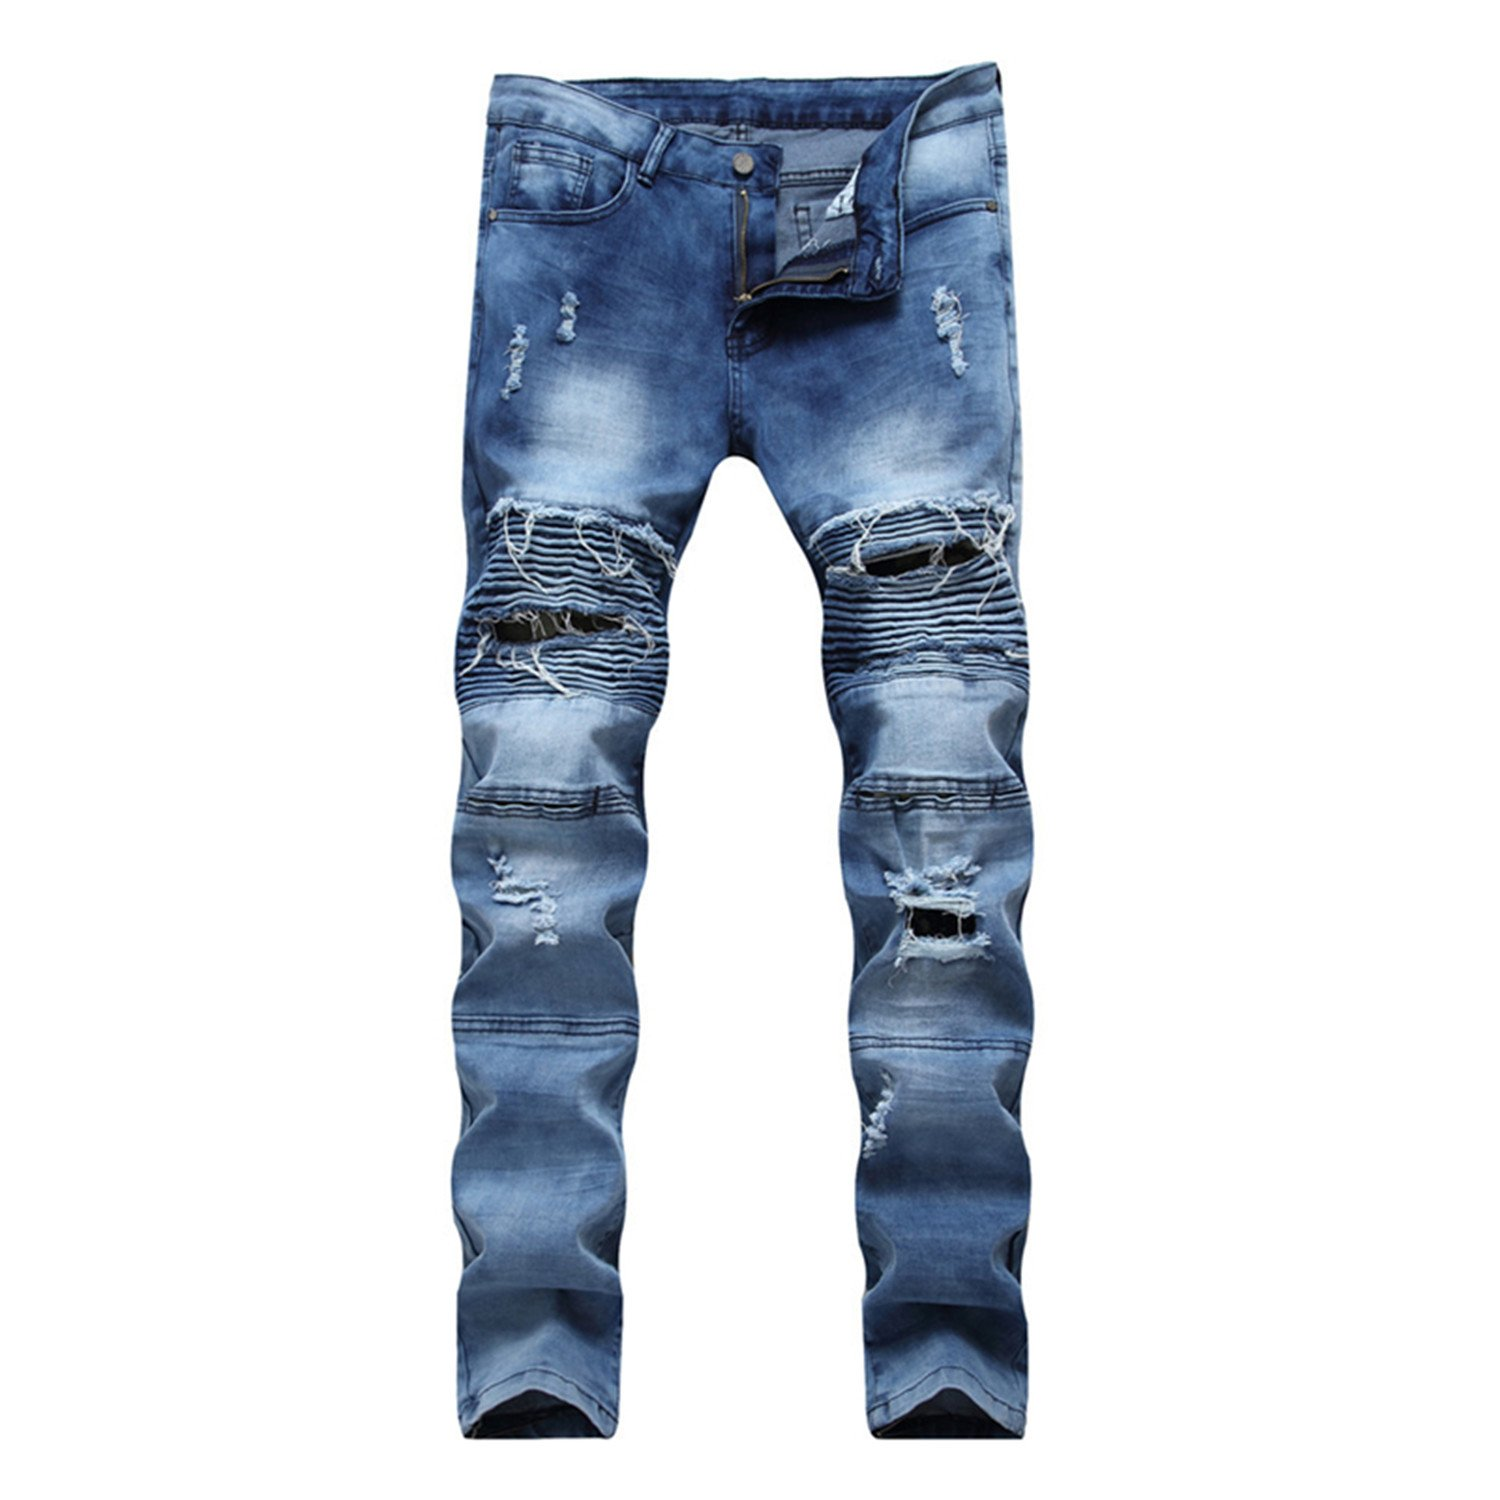 George Gouge New Arrival New Mens Biker Jeans Ripped Distressed Motorcycle Jeans For Men Brand Clothes Blue Black